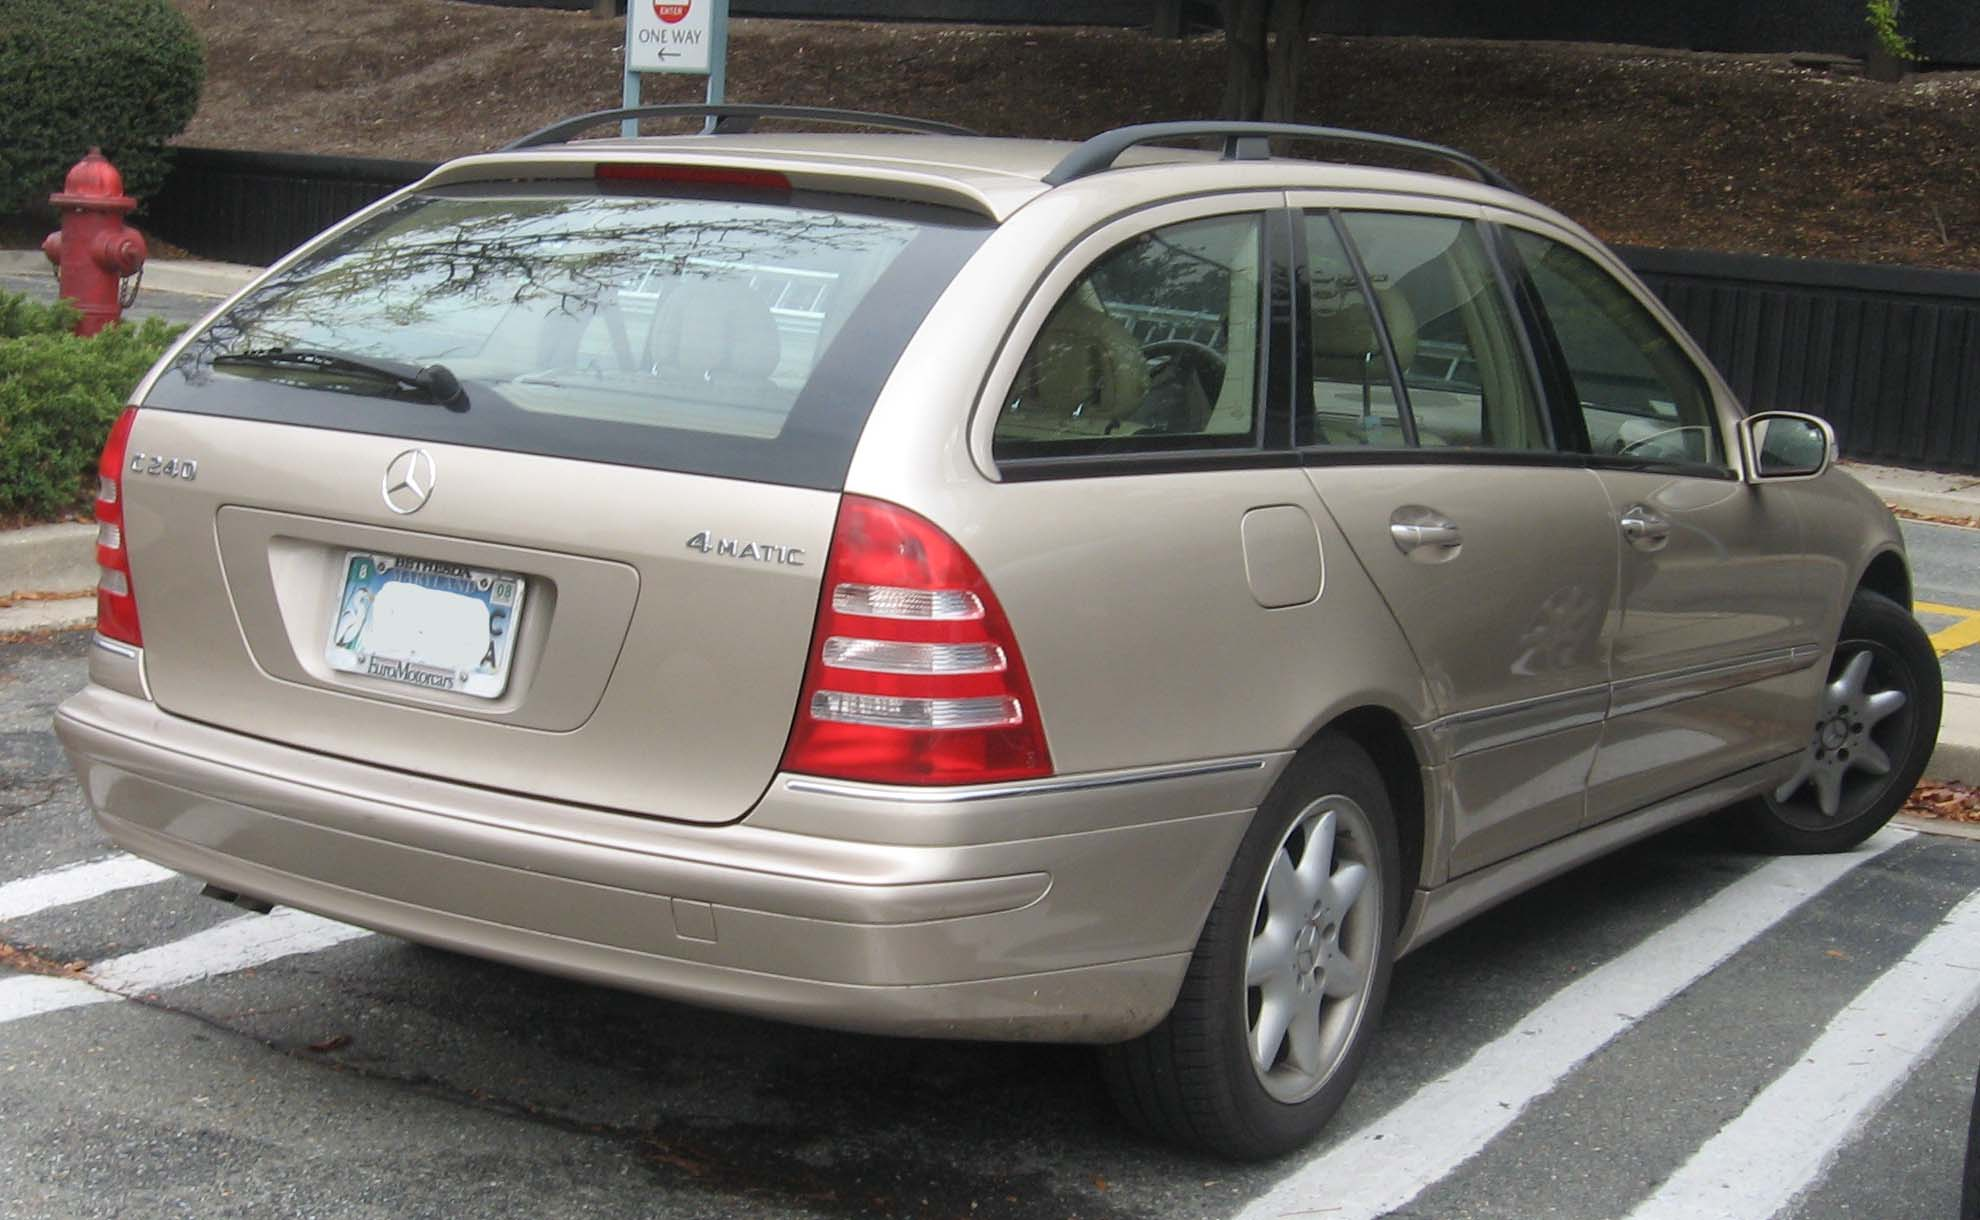 hight resolution of file mercedes benz c240 wagon jpg